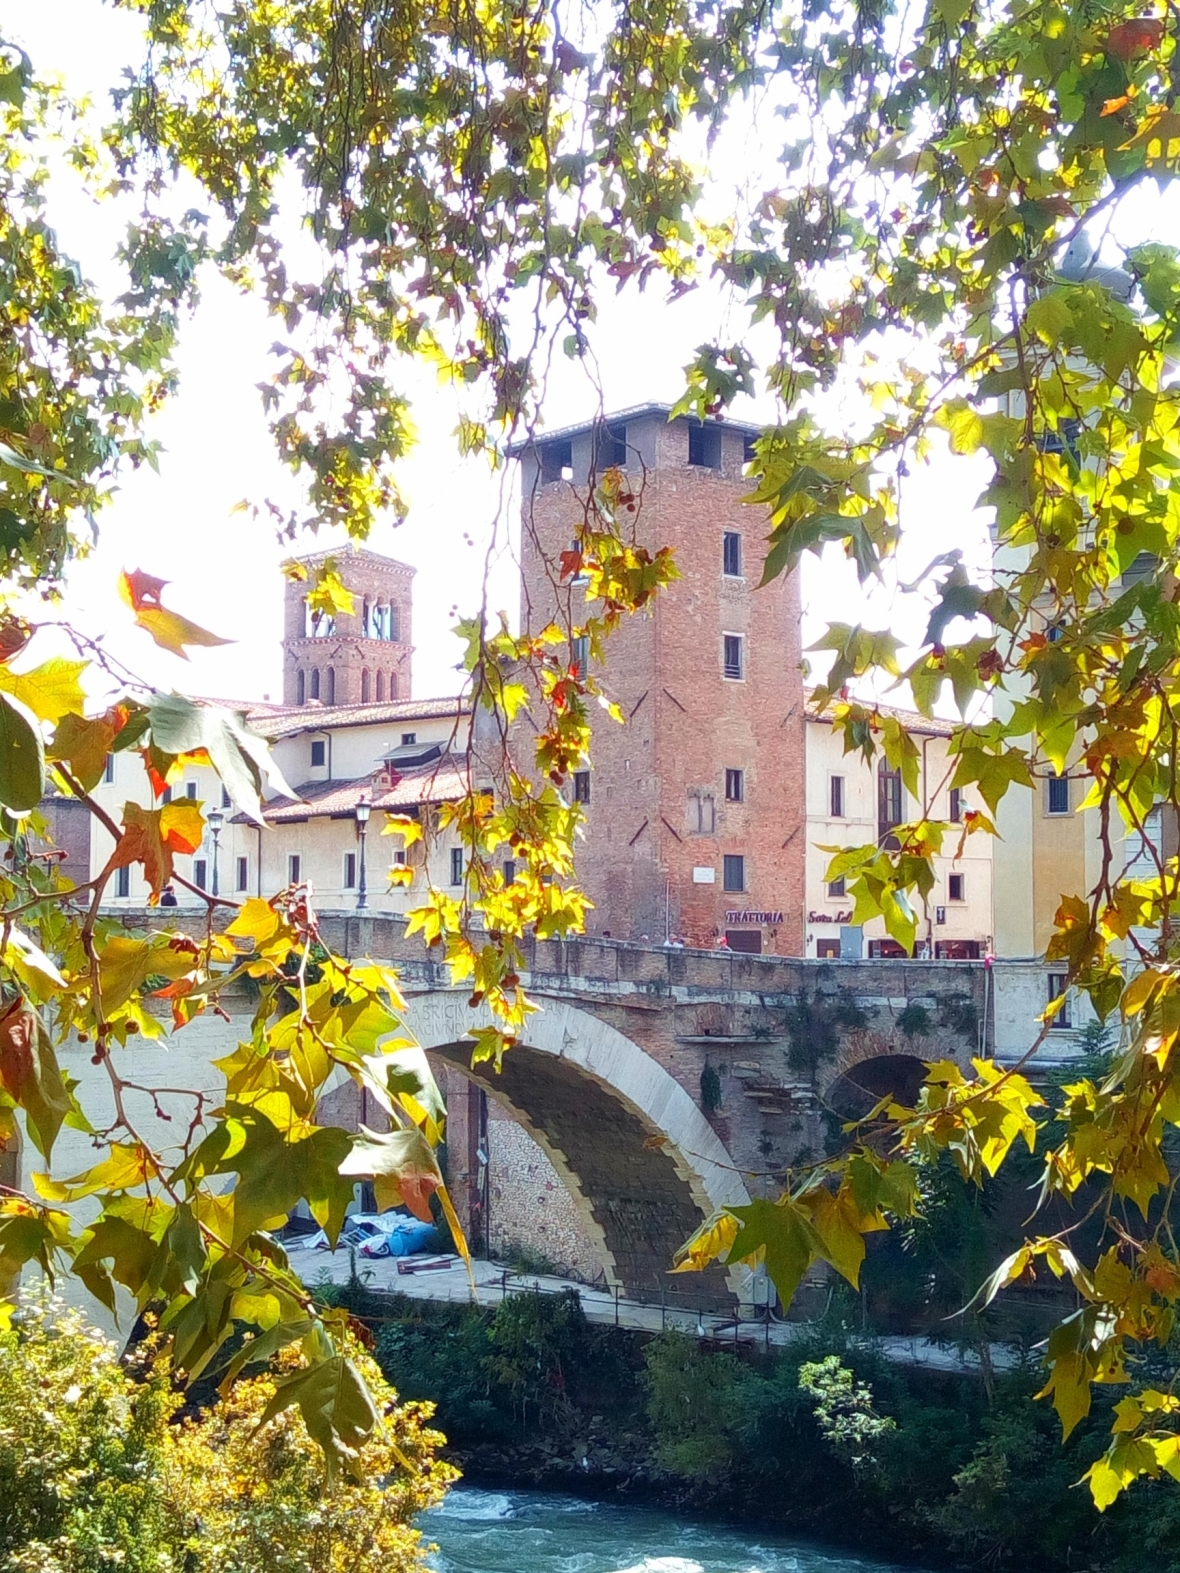 One of the bridges that connect Isola Tiberina to the rest of the city